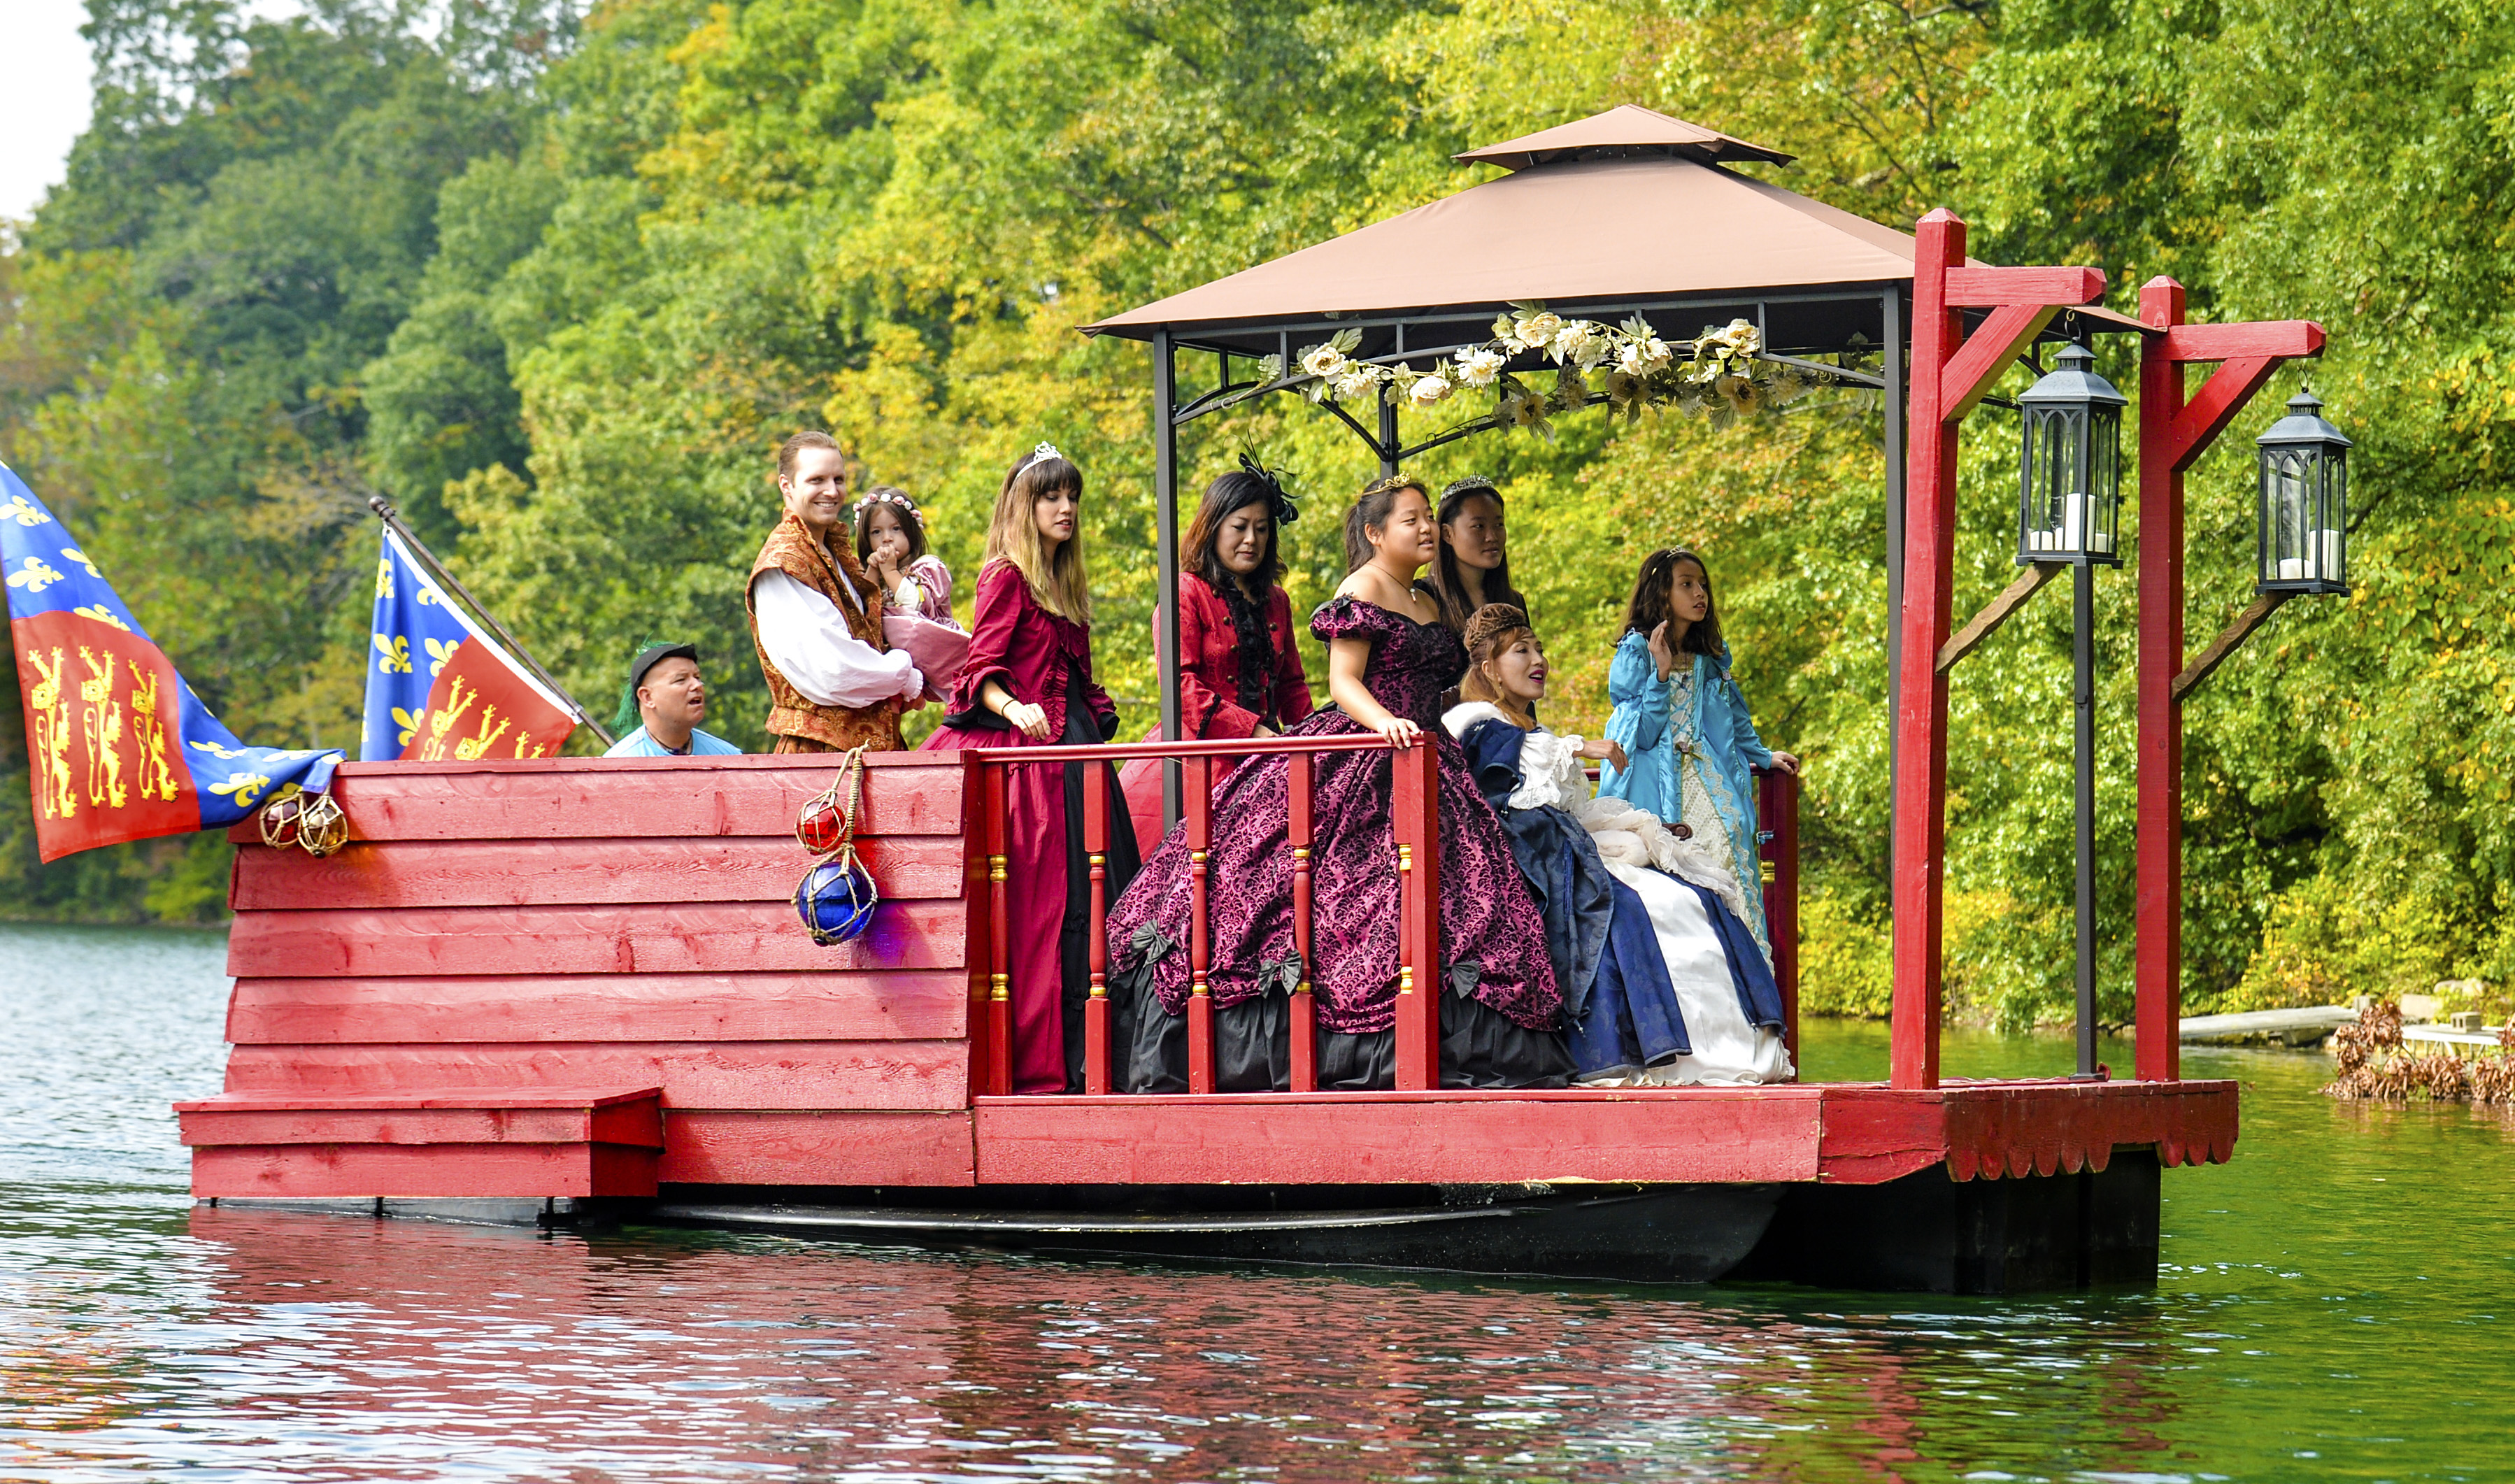 THE QUEENS BARGE